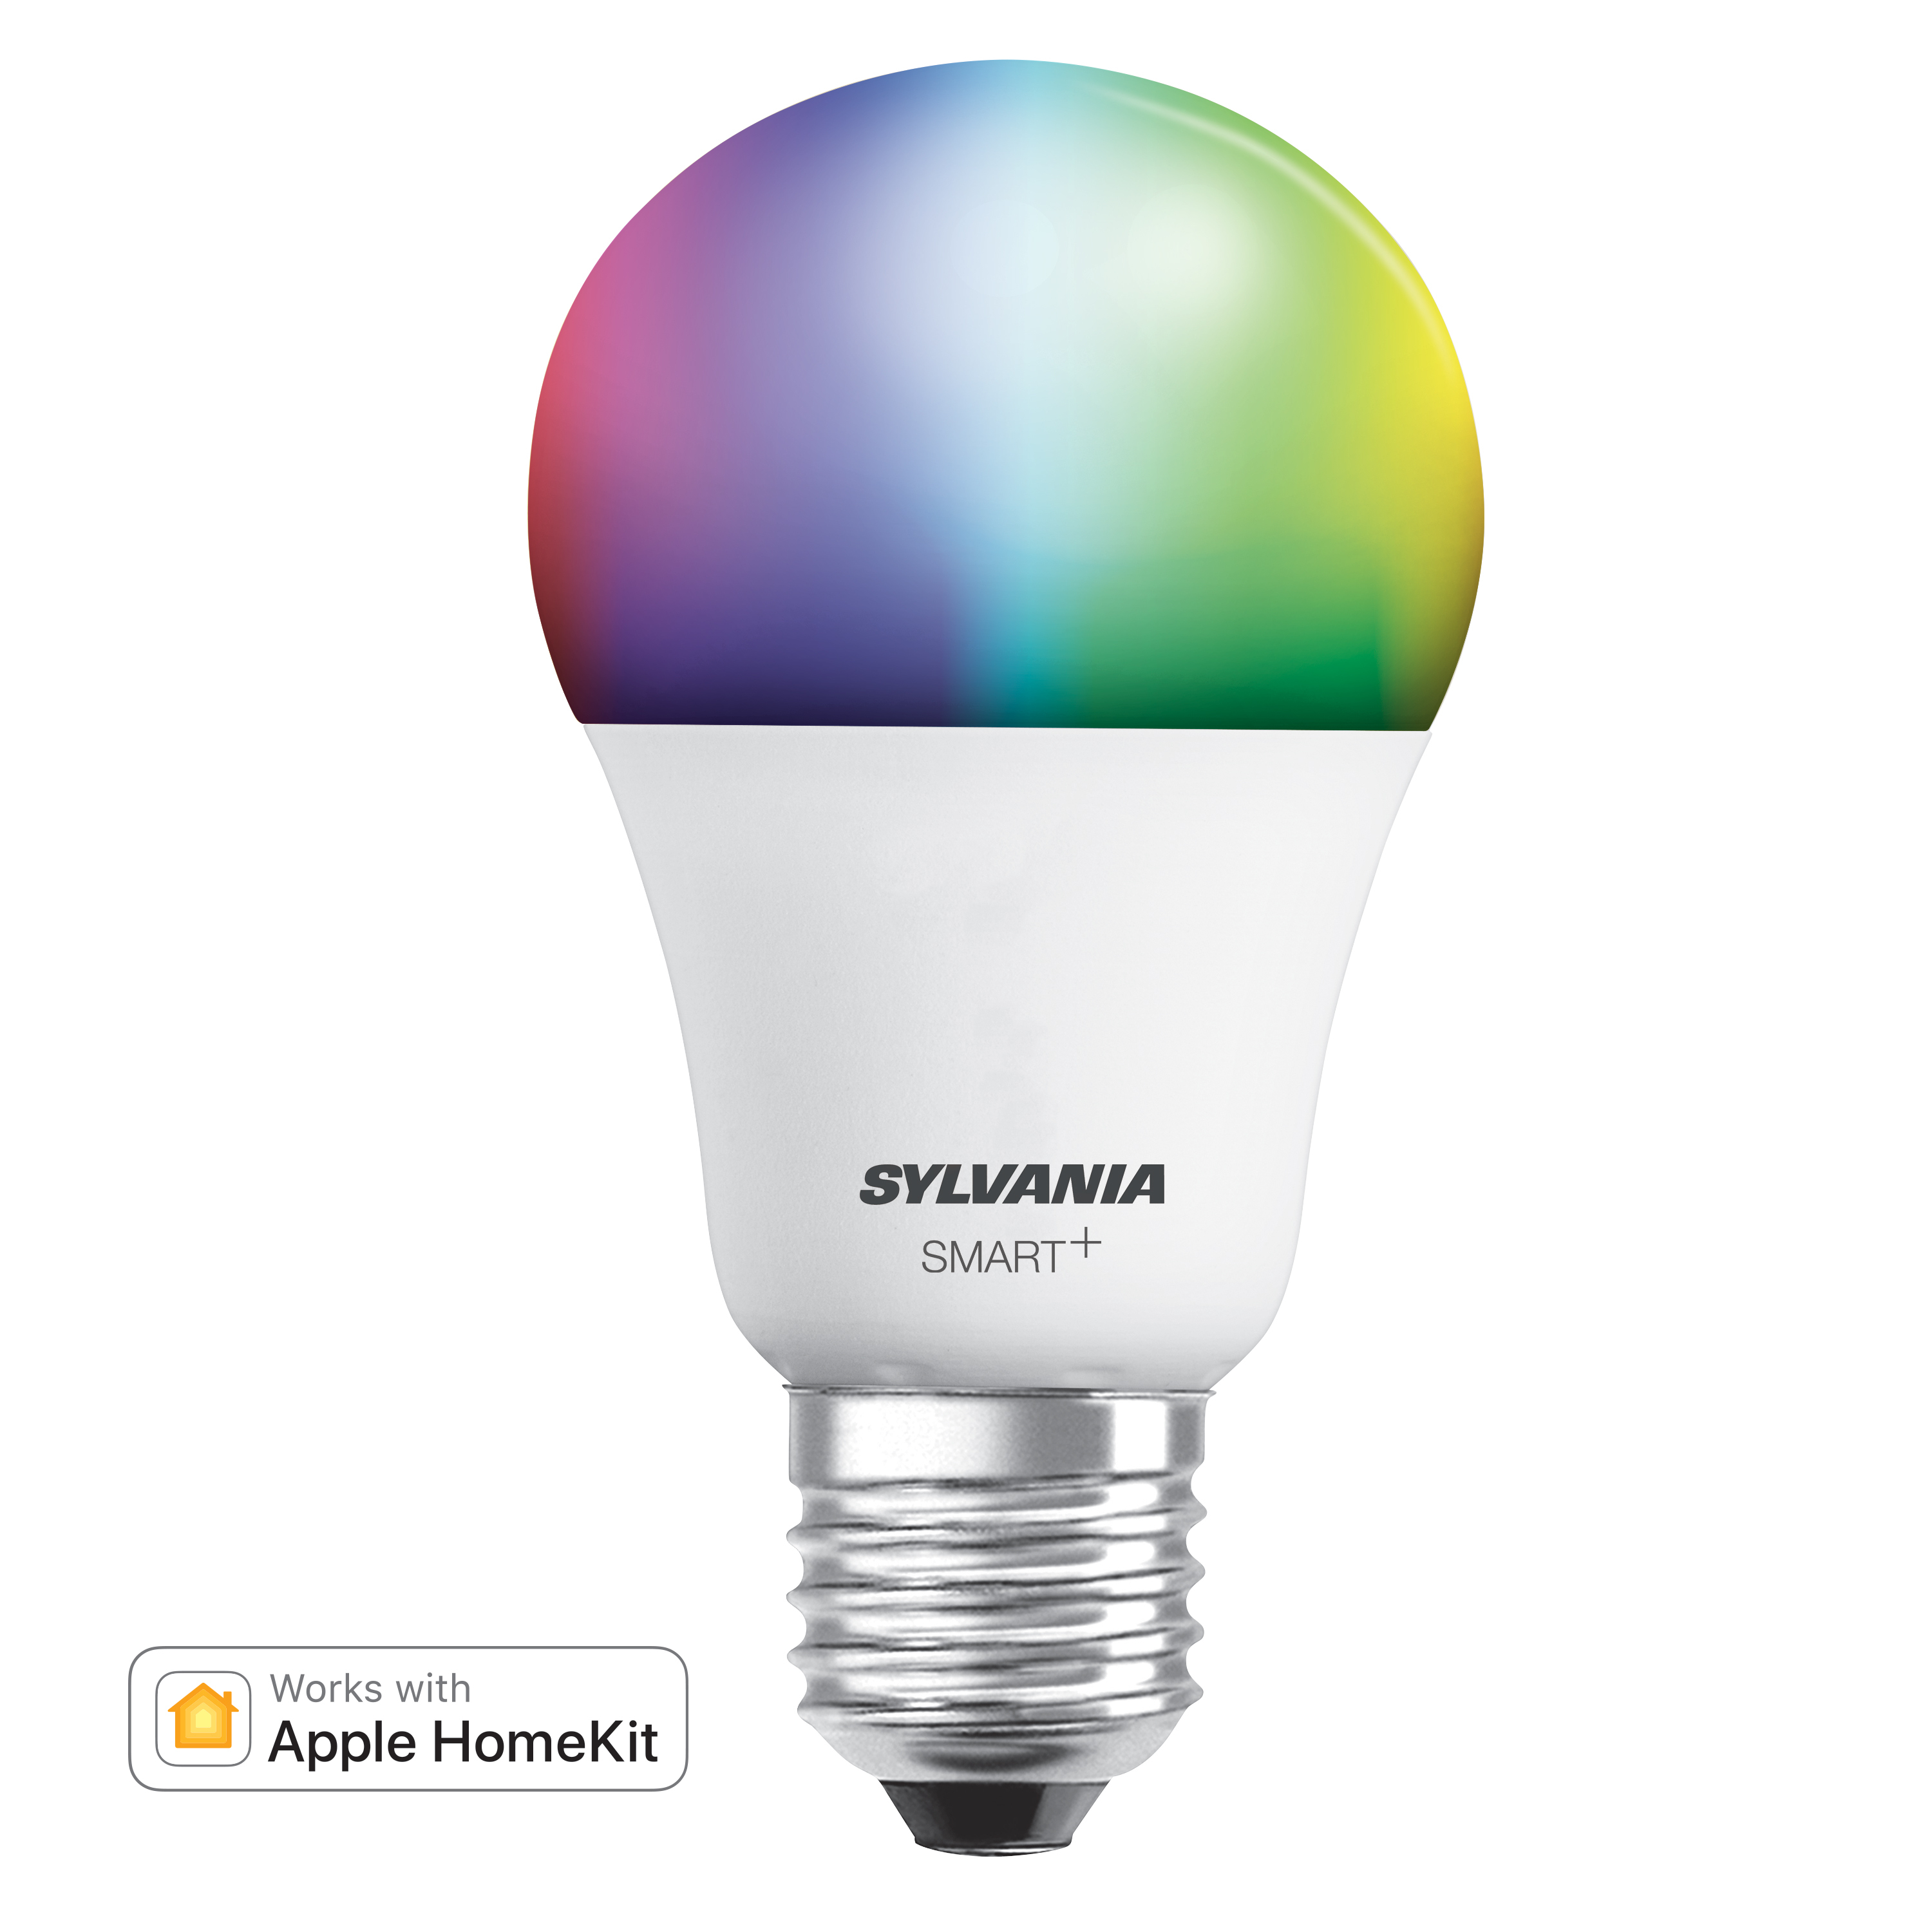 SYLVANIA SMART+ First HomeKit-enabled, Hub Free Light Bulb ...